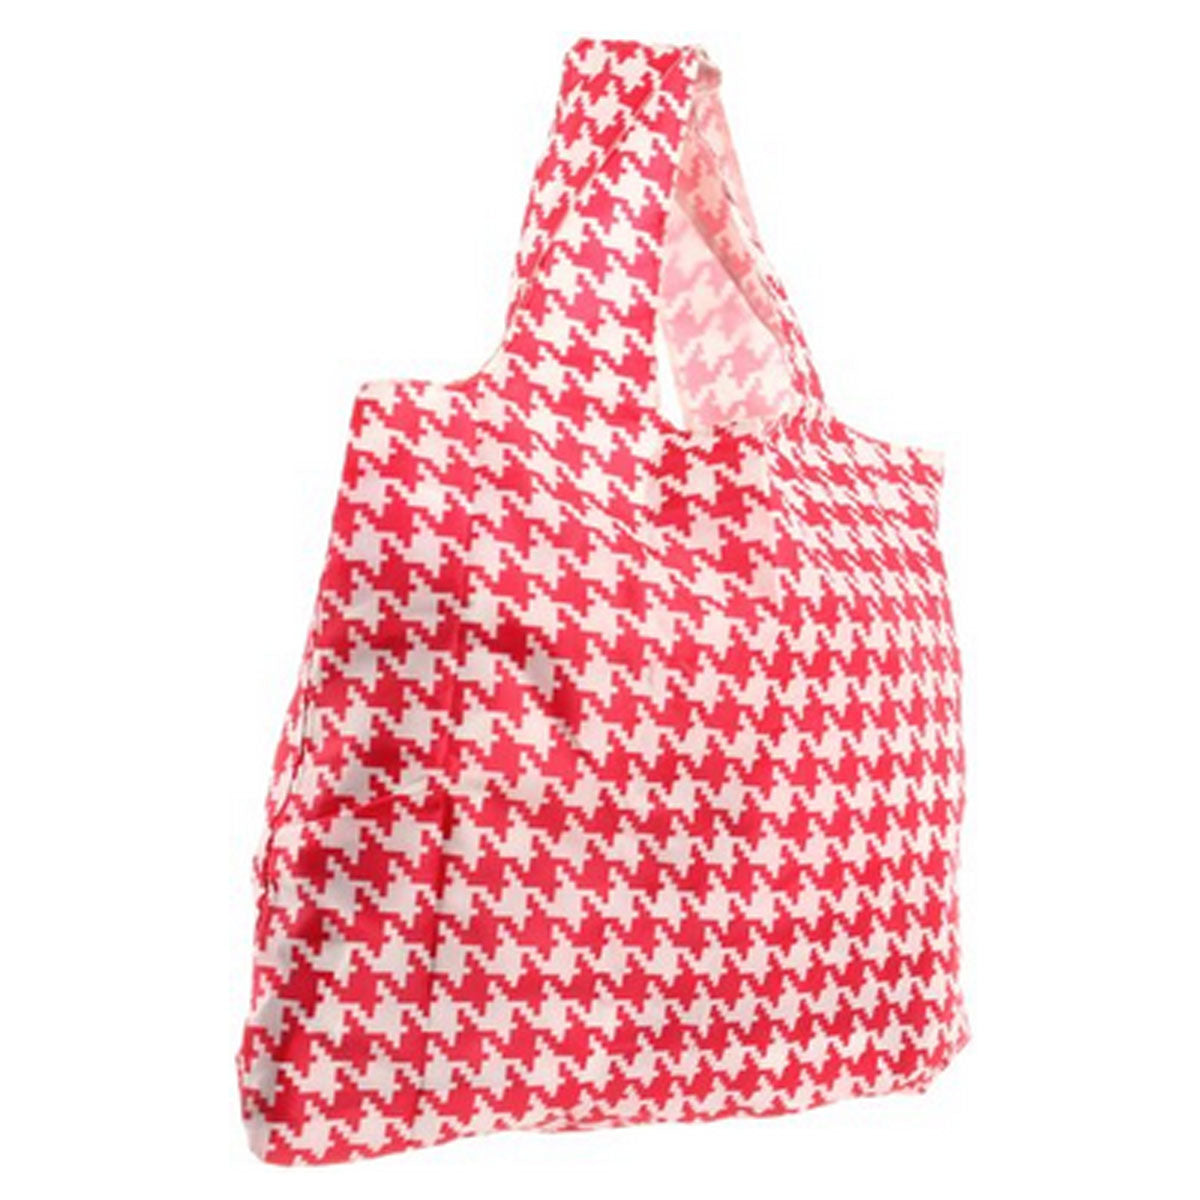 Envirosax Rosa and Cherry Lane Reusable Shopping Bag, Set of 2 [A62897, A66766]